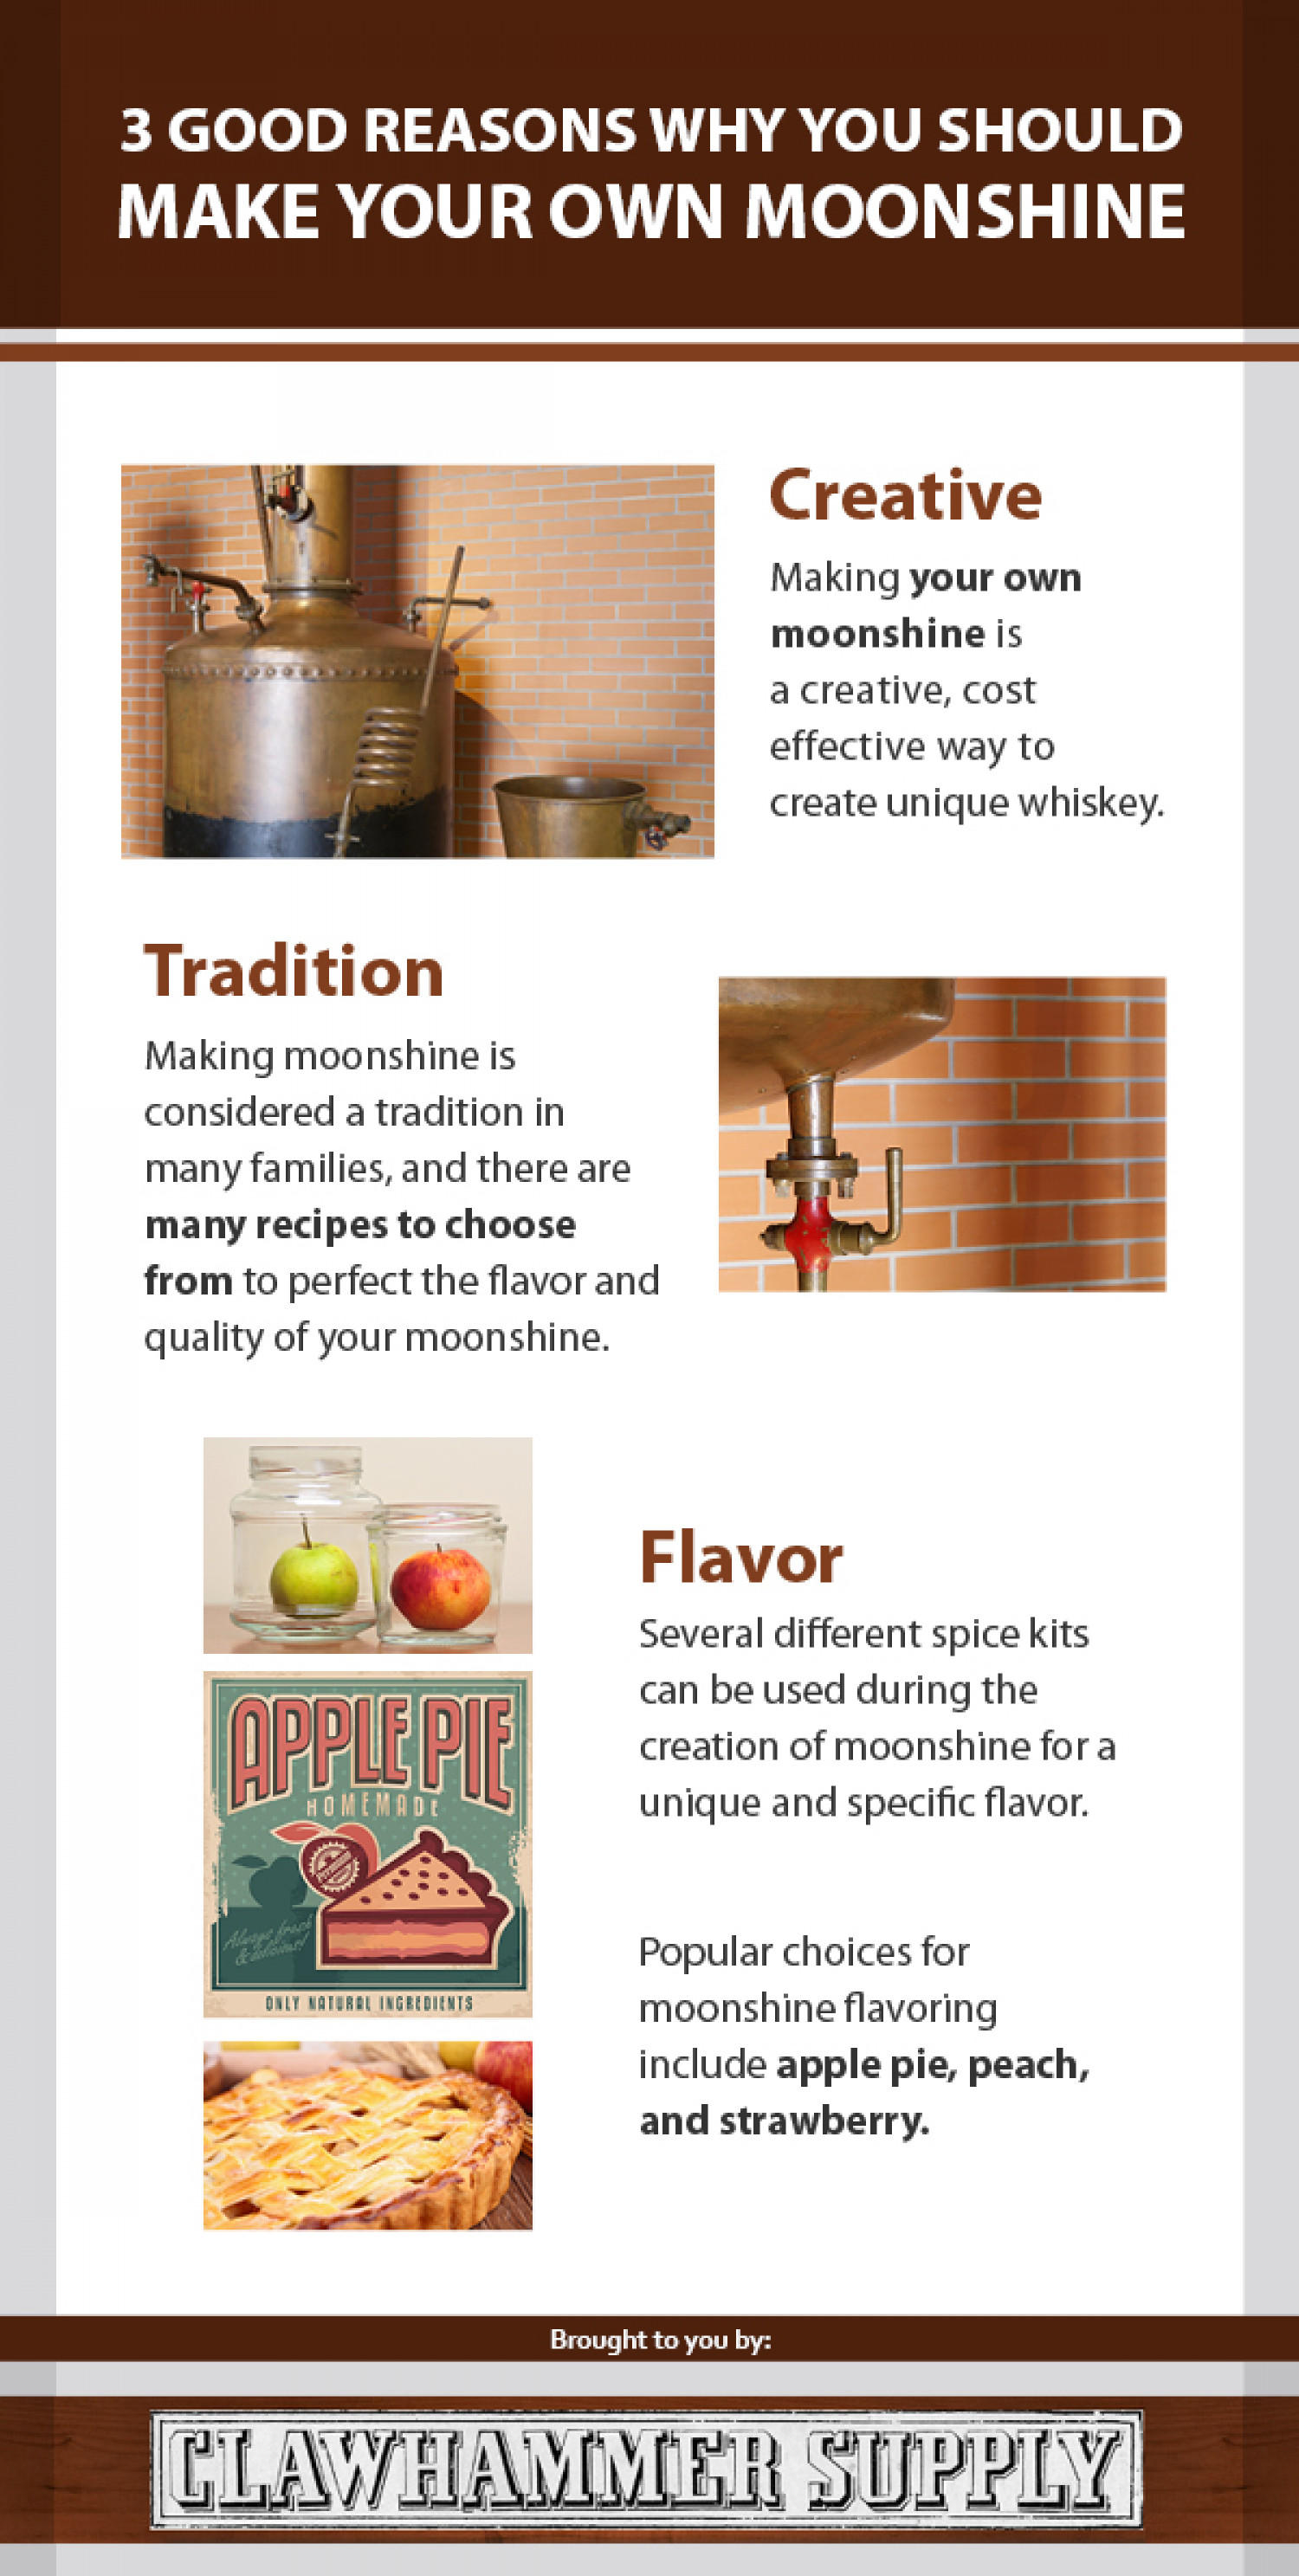 3 Good Reasons Why You Should Make Your Own Moonshine Infographic